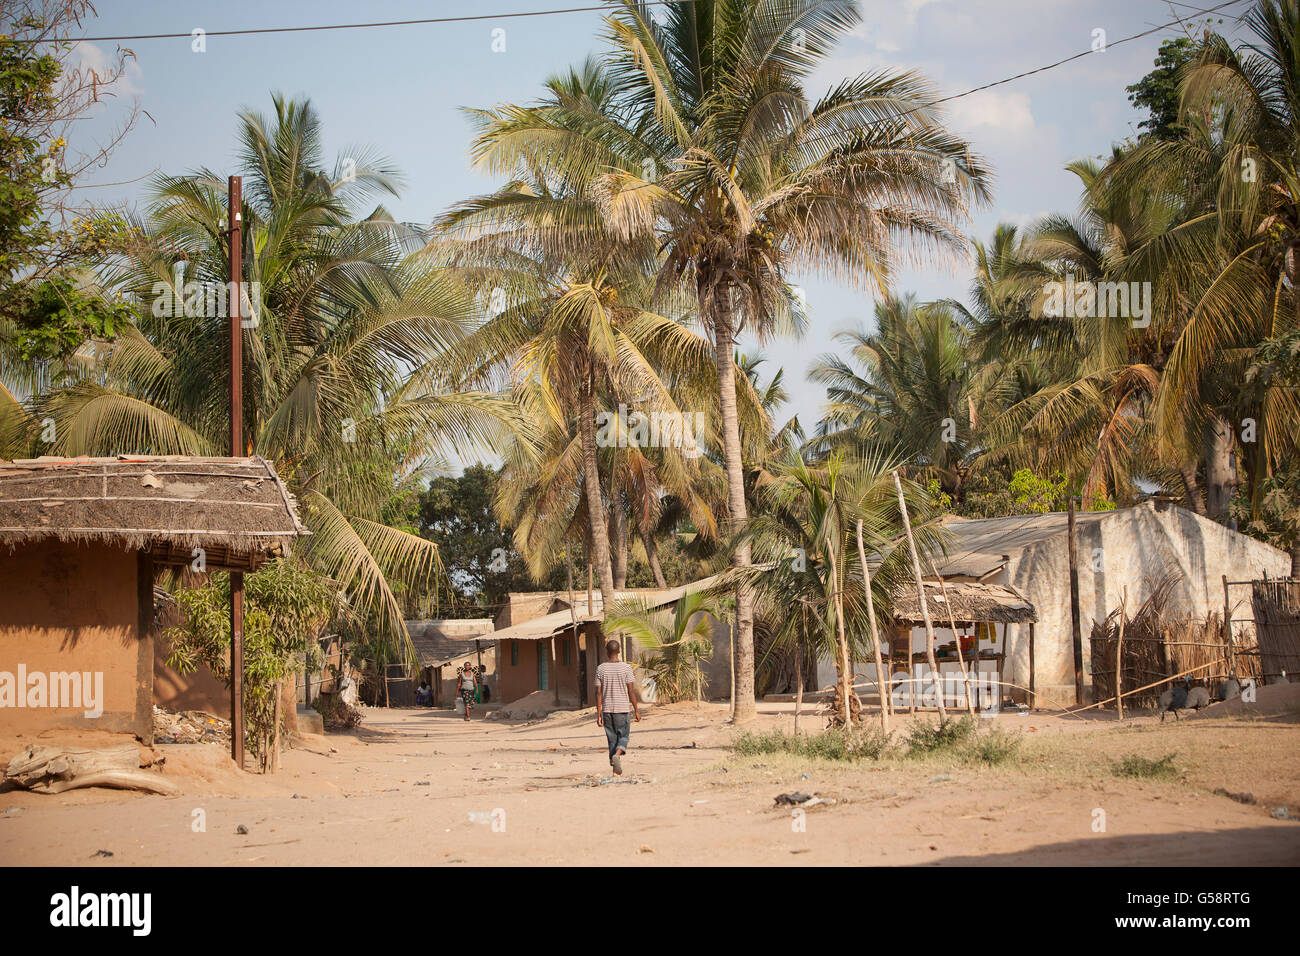 Palm trees tower over a suburban neighborhood in Nampula, Mozambique. - Stock Image